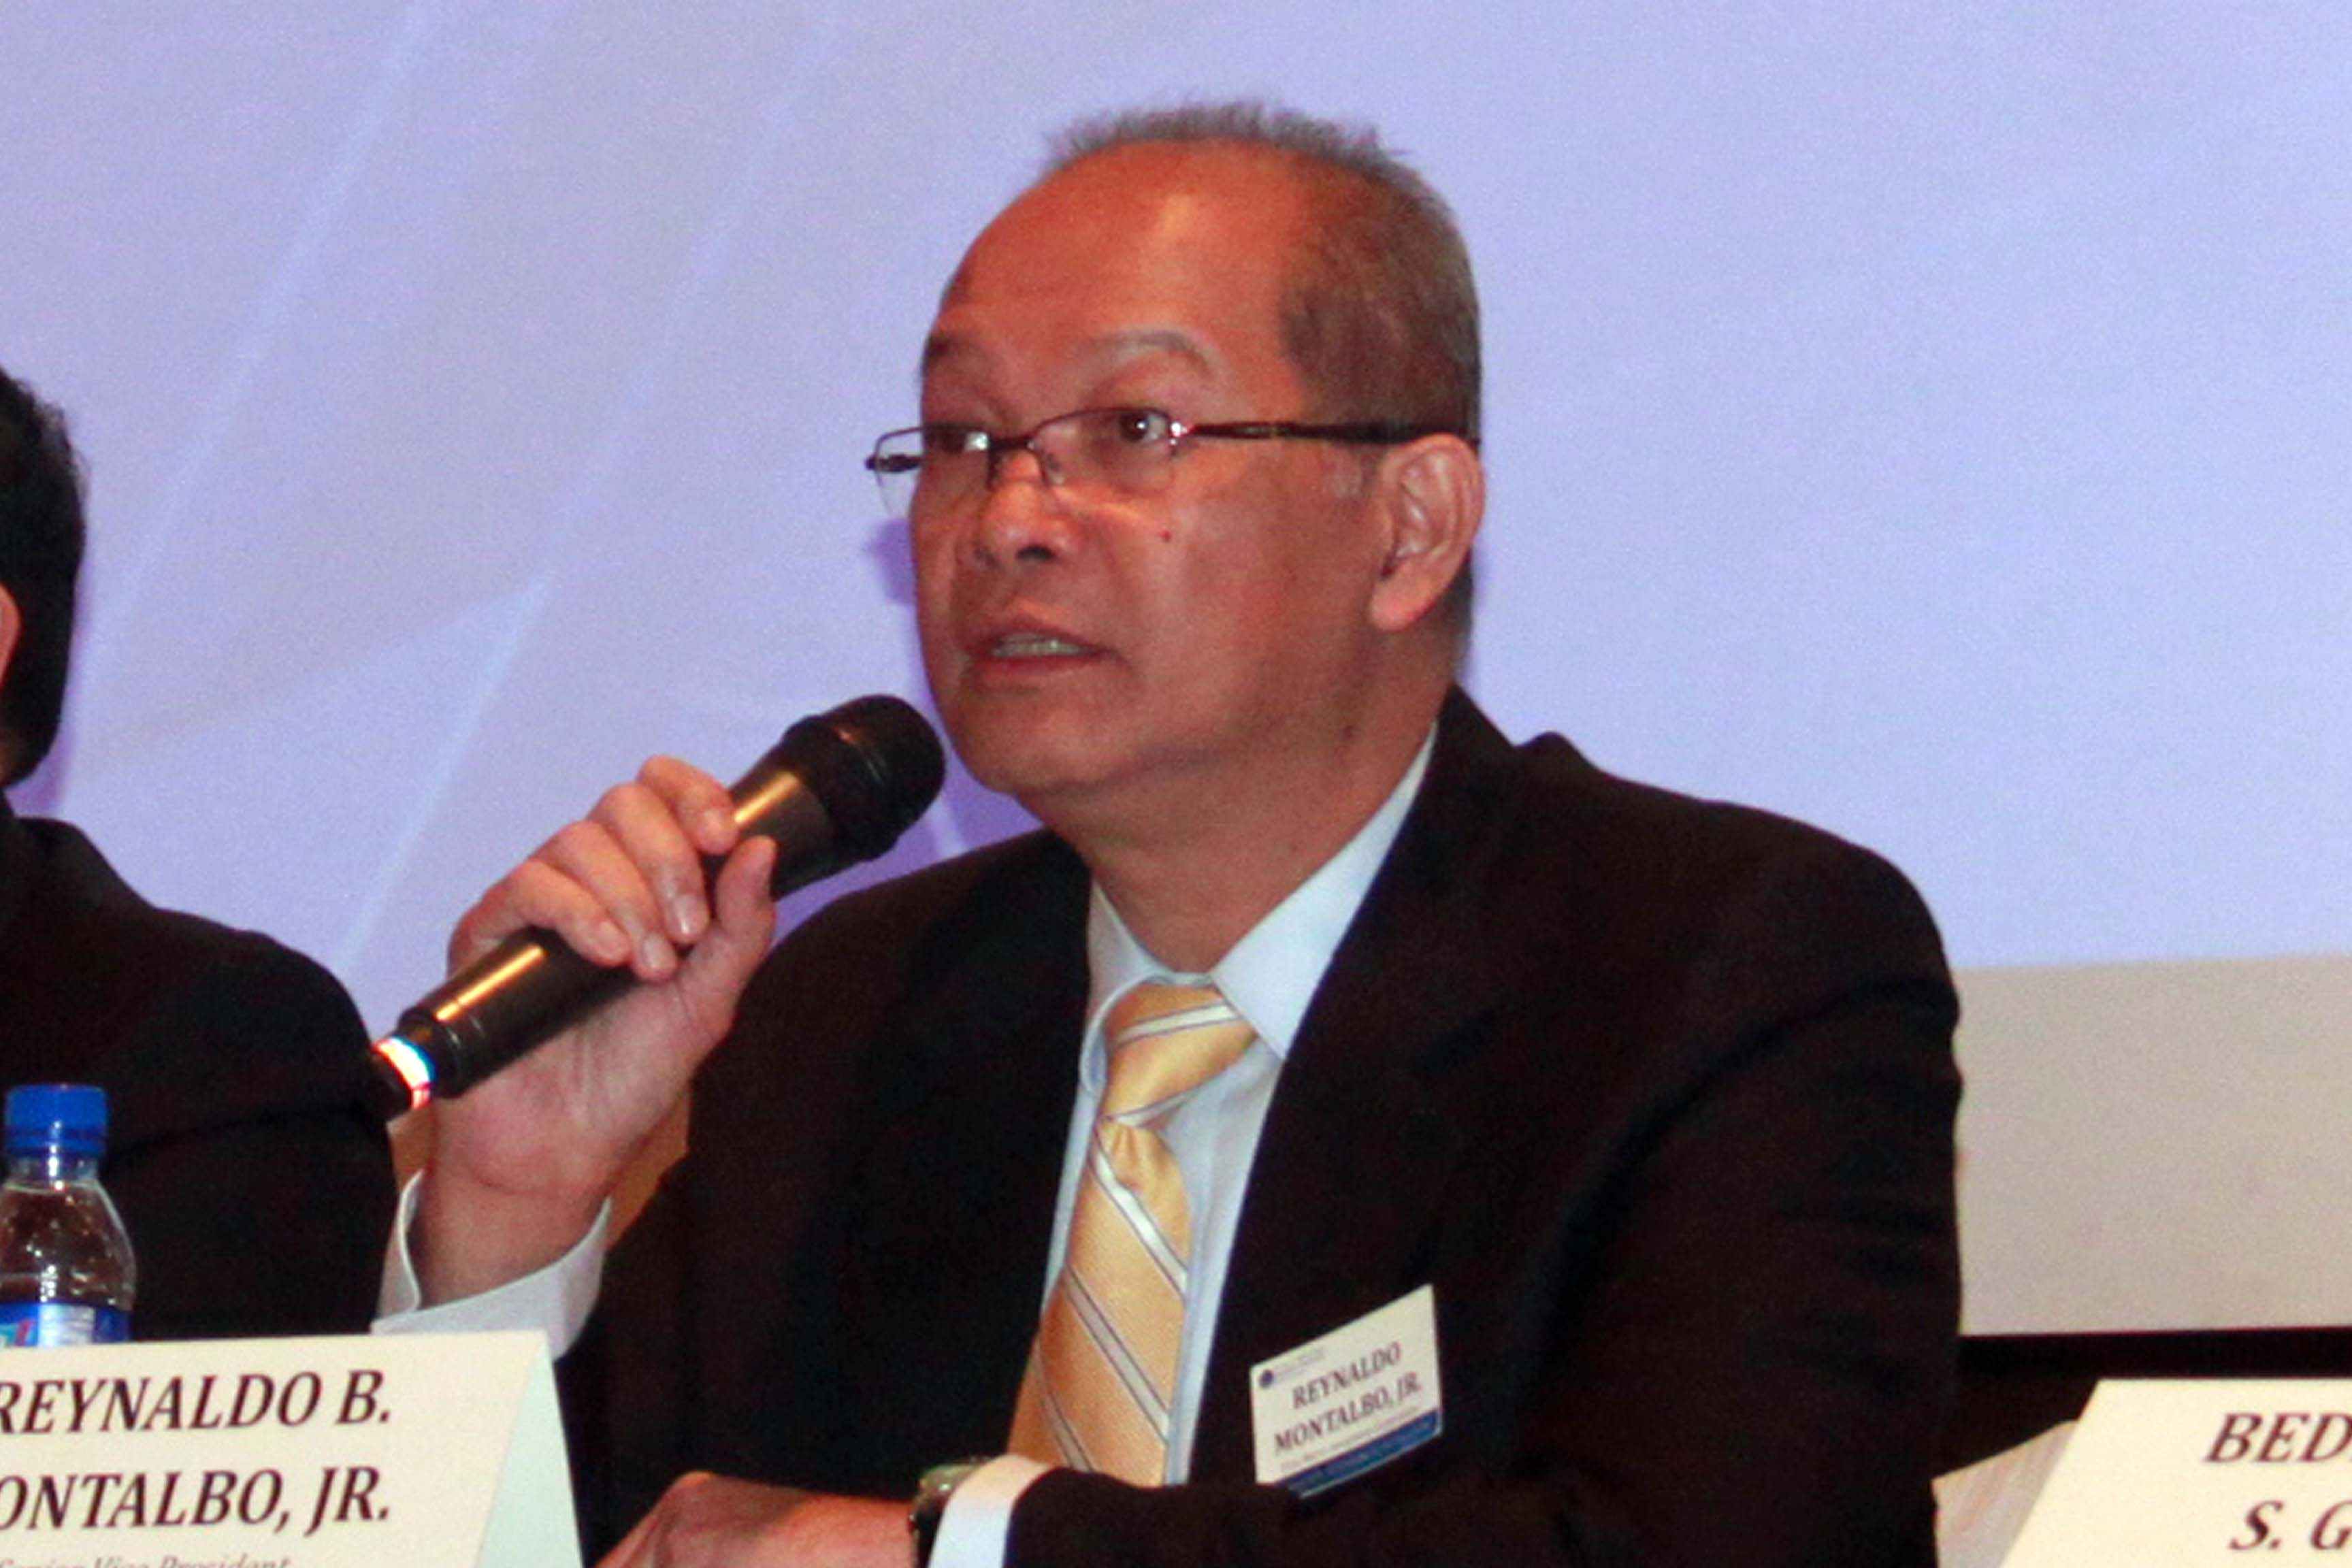 Reynaldo Montalbo, Financial Markets Group Head, at the First Metro Annual Economic & Capital Markets Briefing